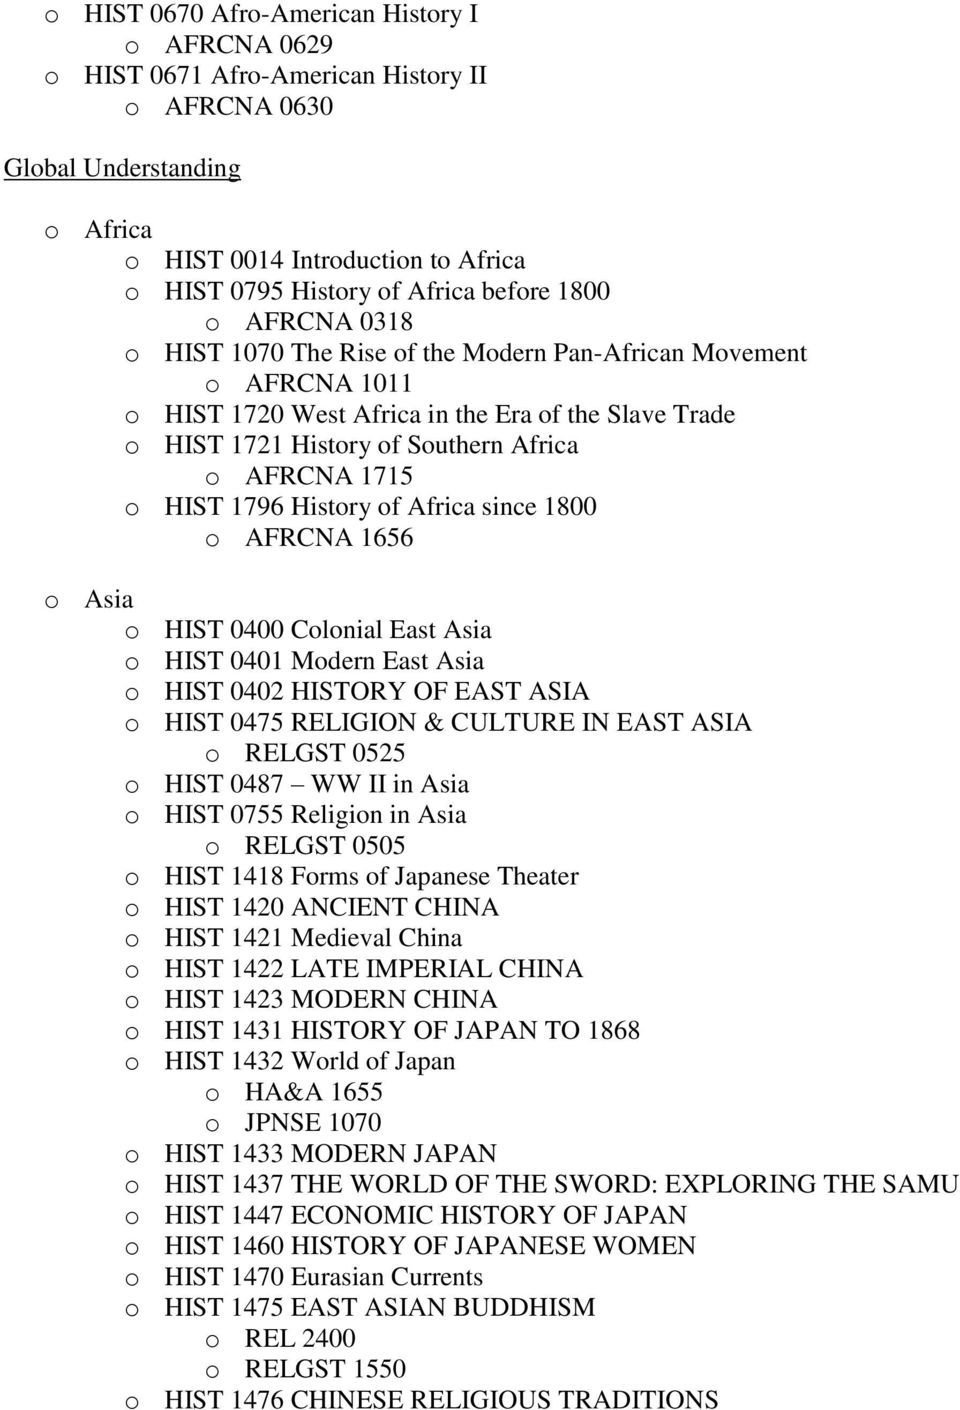 1715 o HIST 1796 History of Africa since 1800 o AFRCNA 1656 o Asia o HIST 0400 Colonial East Asia o HIST 0401 Modern East Asia o HIST 0402 HISTORY OF EAST ASIA o HIST 0475 RELIGION & CULTURE IN EAST